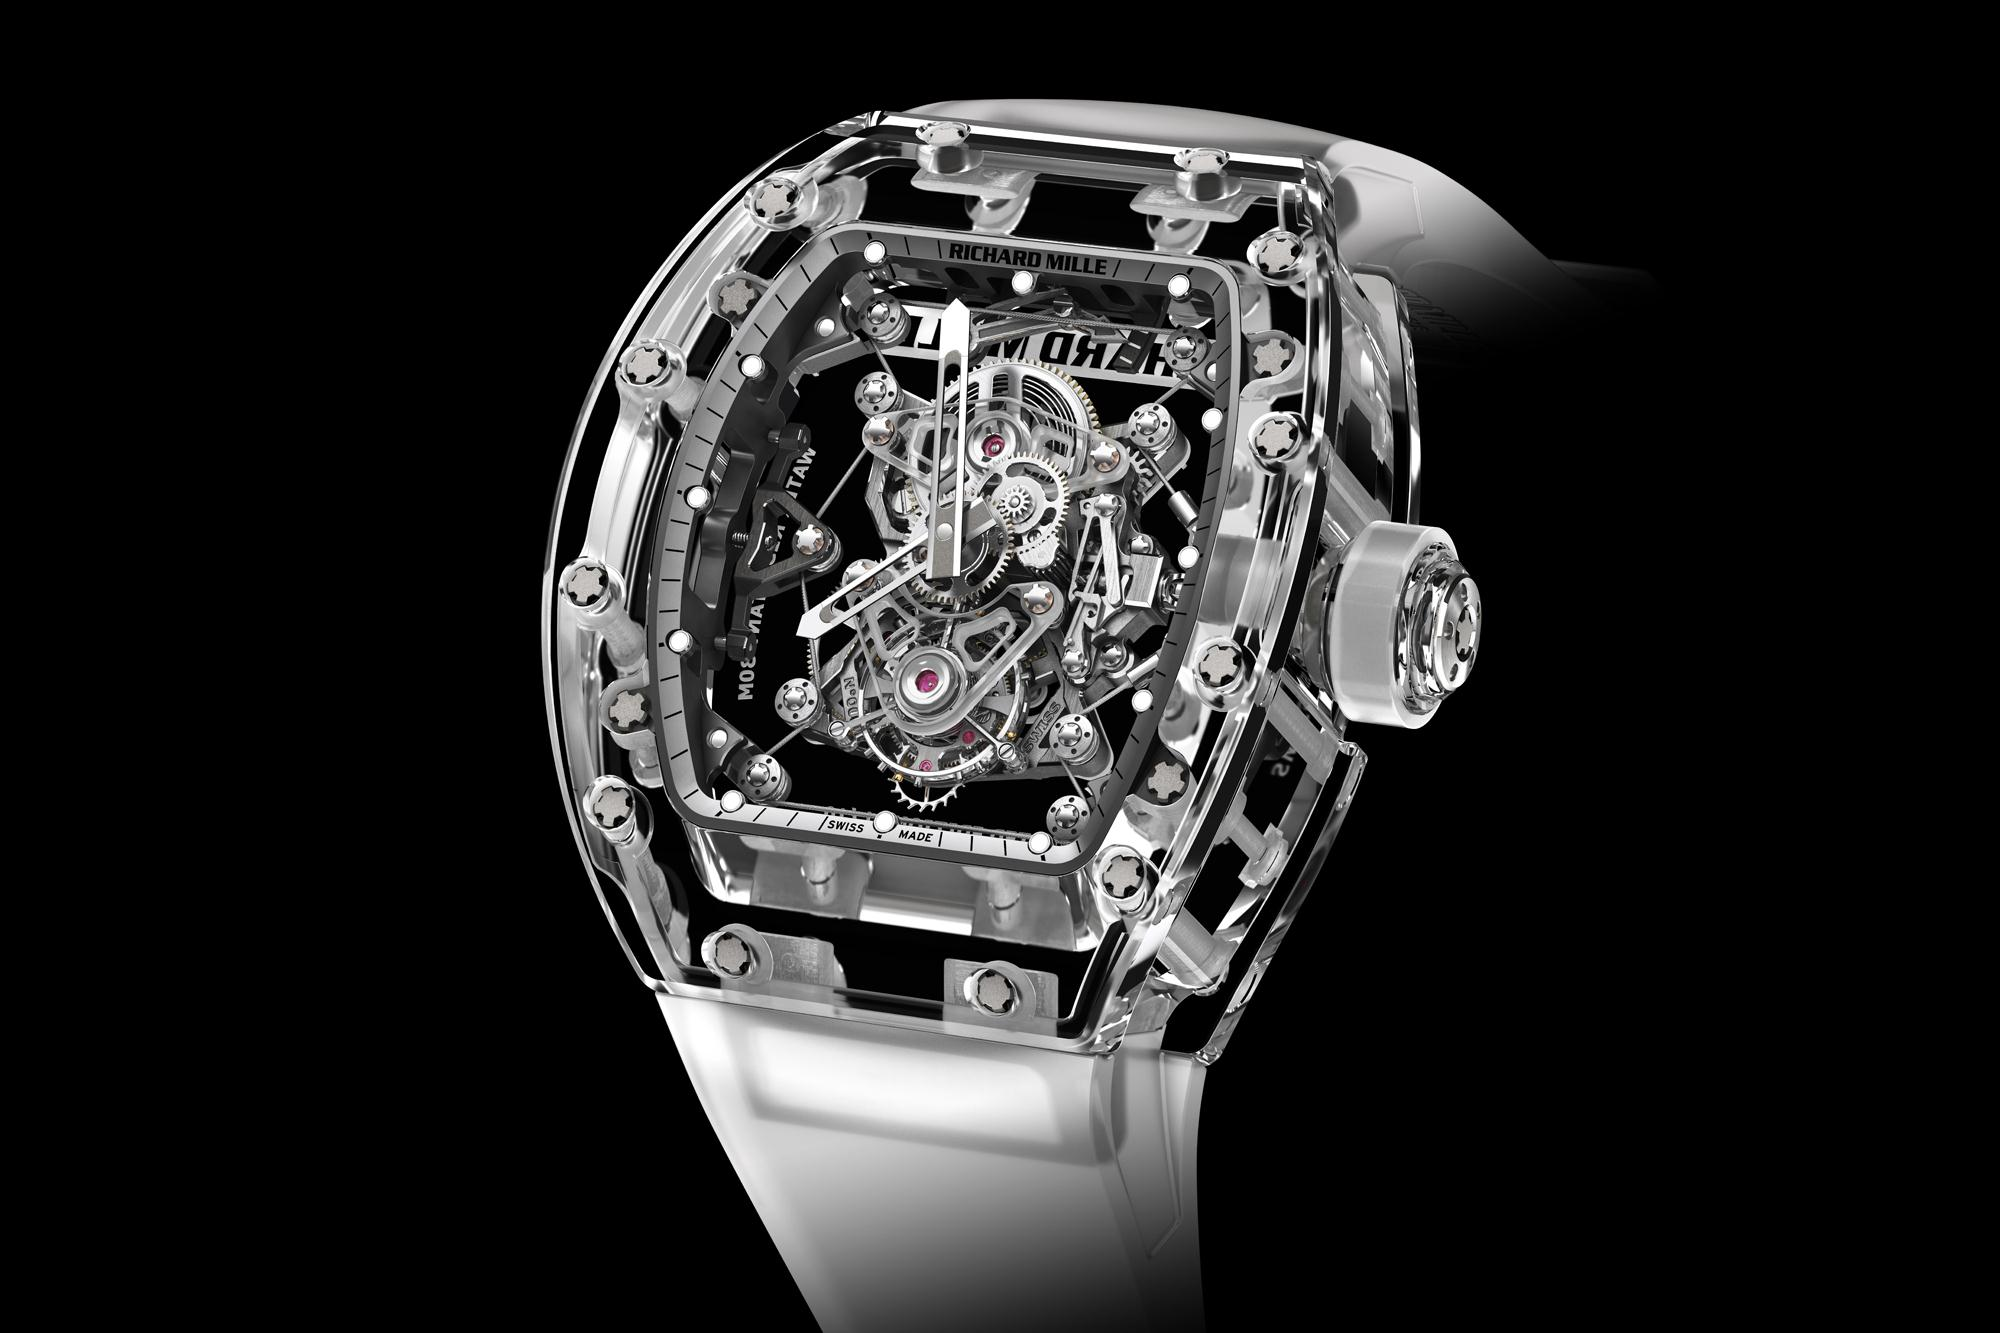 Richard Mille has taken prices, and watchmaking, to a new extreme with his latest watch, which touts a $2.2 million price tag.